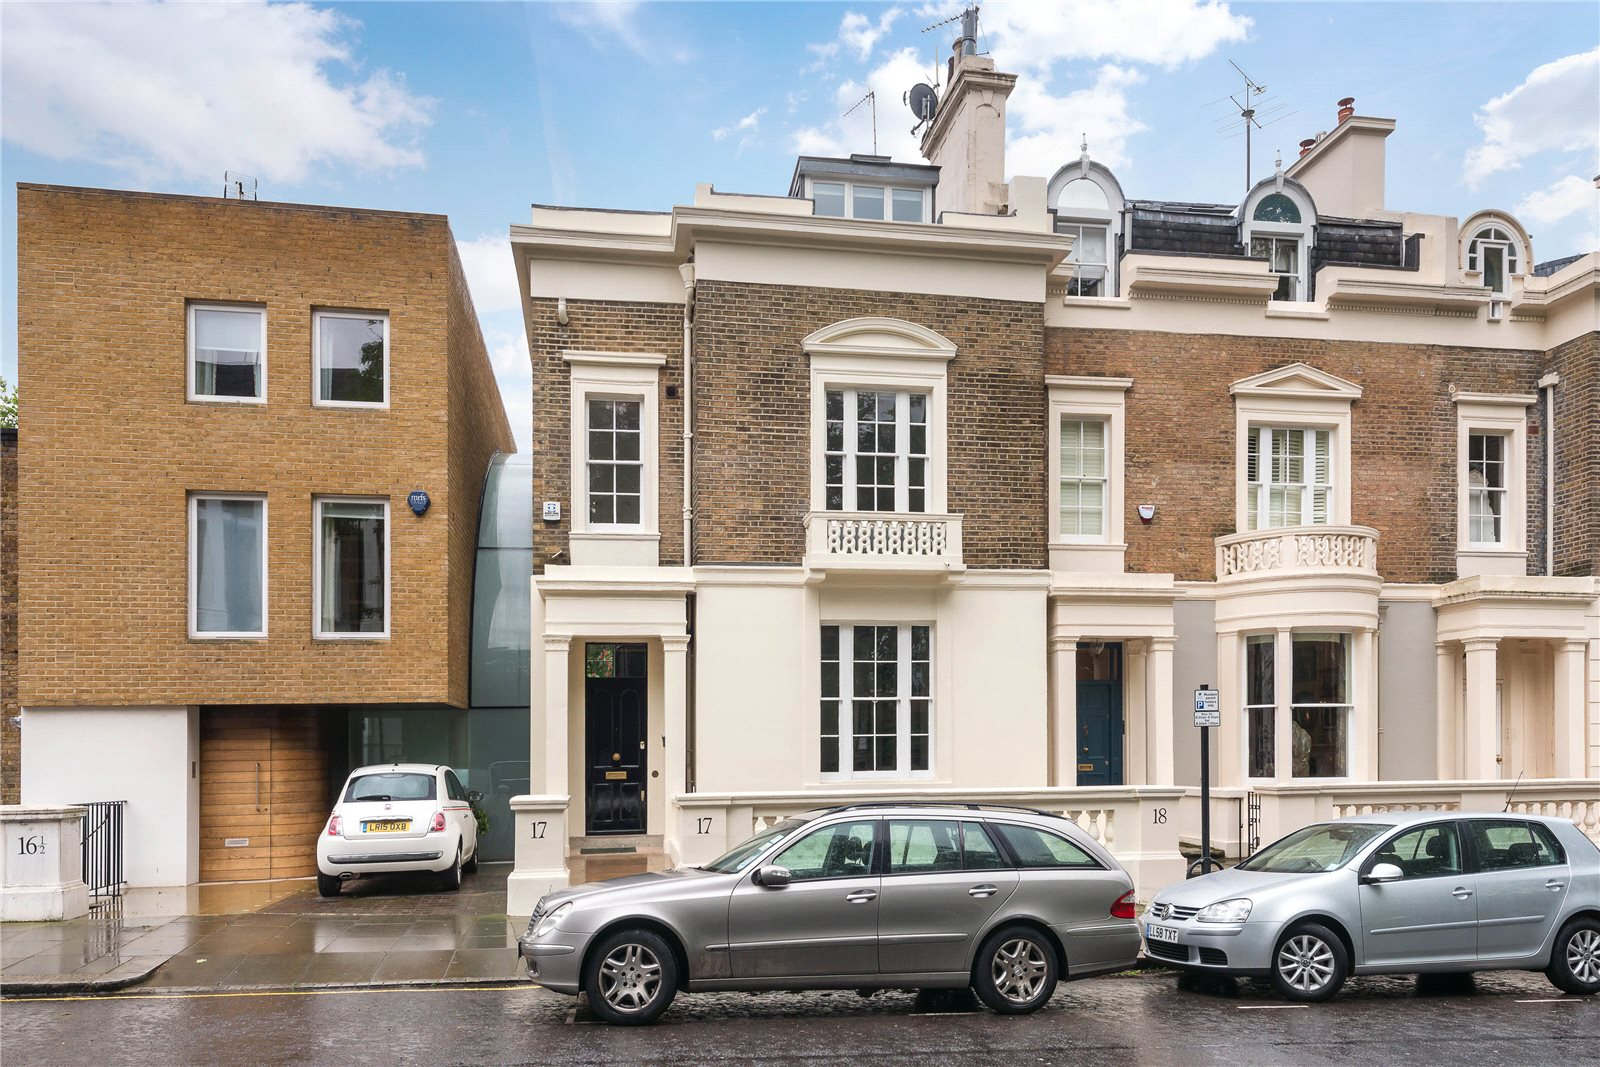 Single Family Home for Sale at Lansdowne Walk, Holland Park, London, W11 Holland Park, London, England